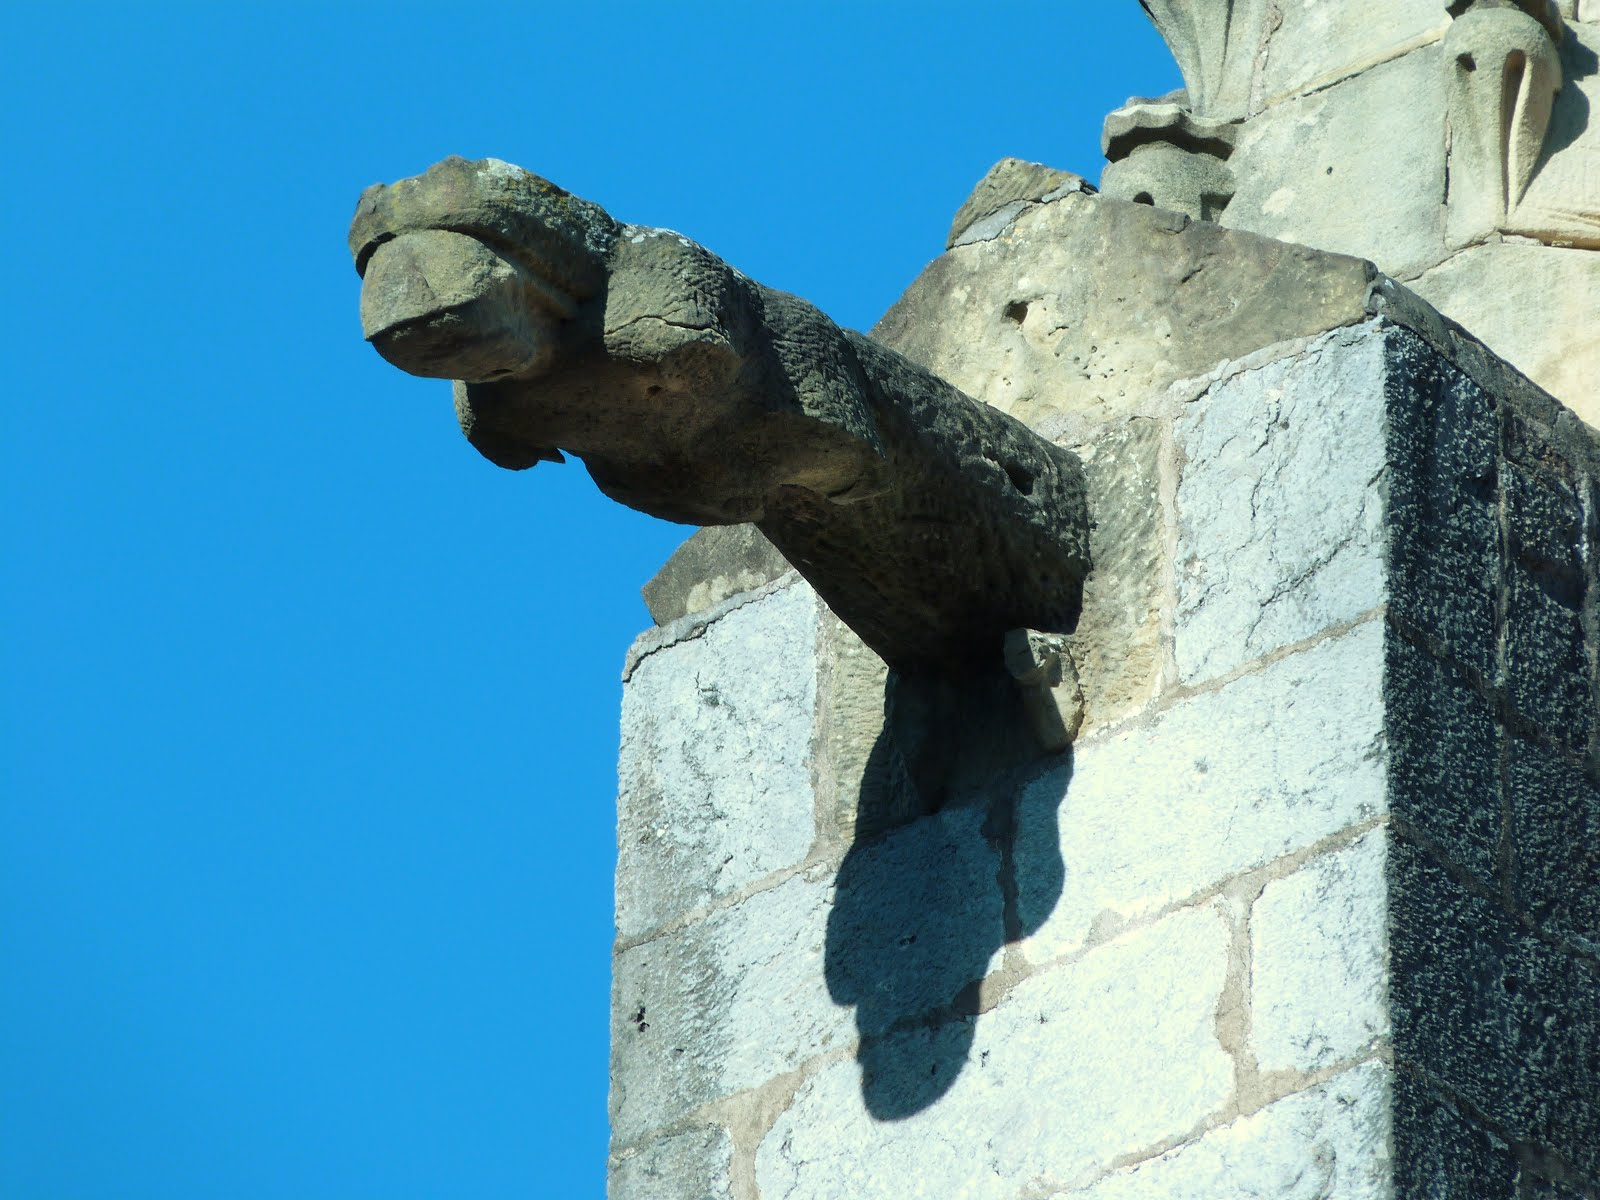 The Gargoyles